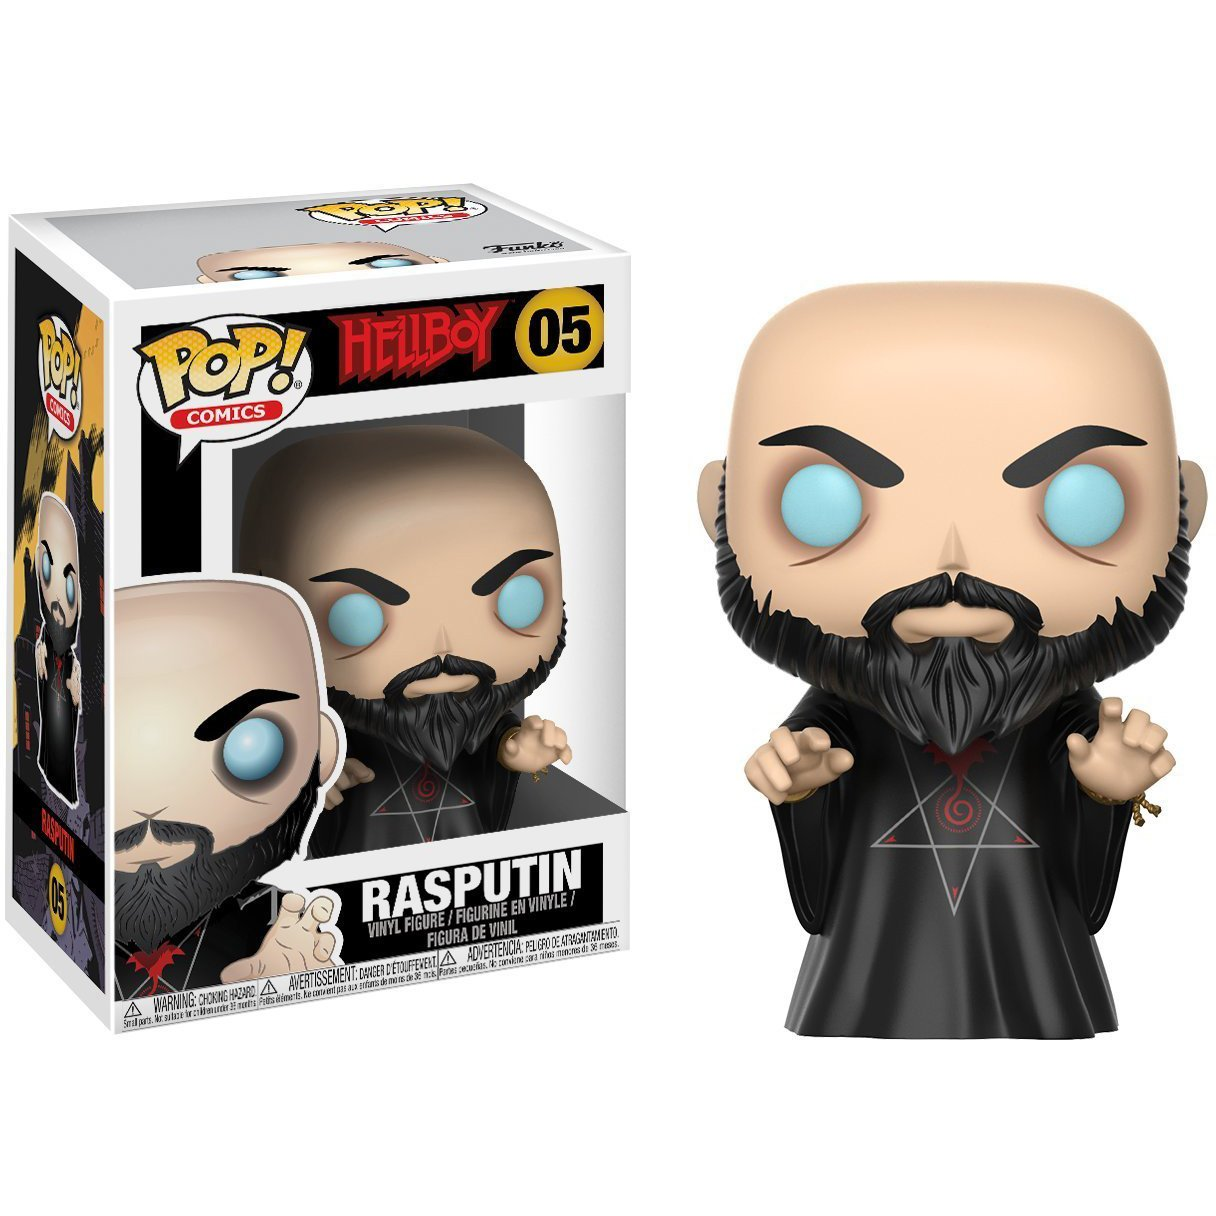 22720 1 Superhero Themed Trading Card Bundle BCC944P05 Comics x Hellboy Vinyl Figure Funko Rasputin POP